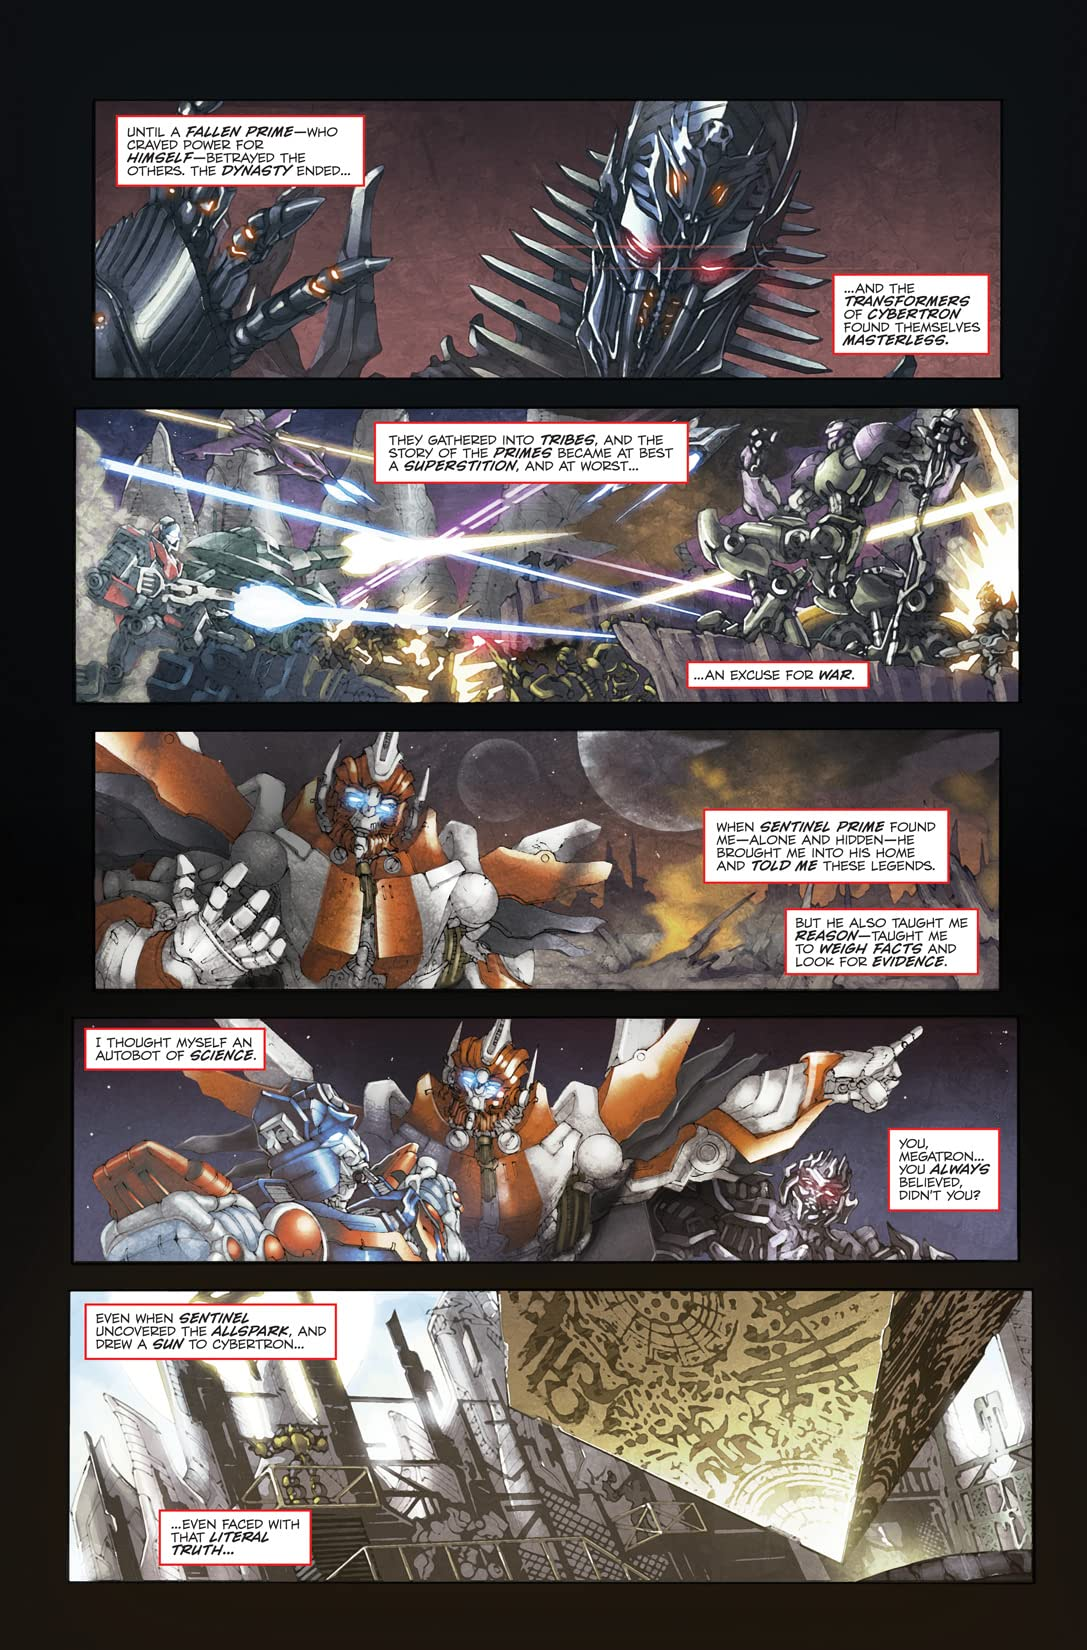 Transformers 3 Movie Prequel - Foundation #2 (of 4)